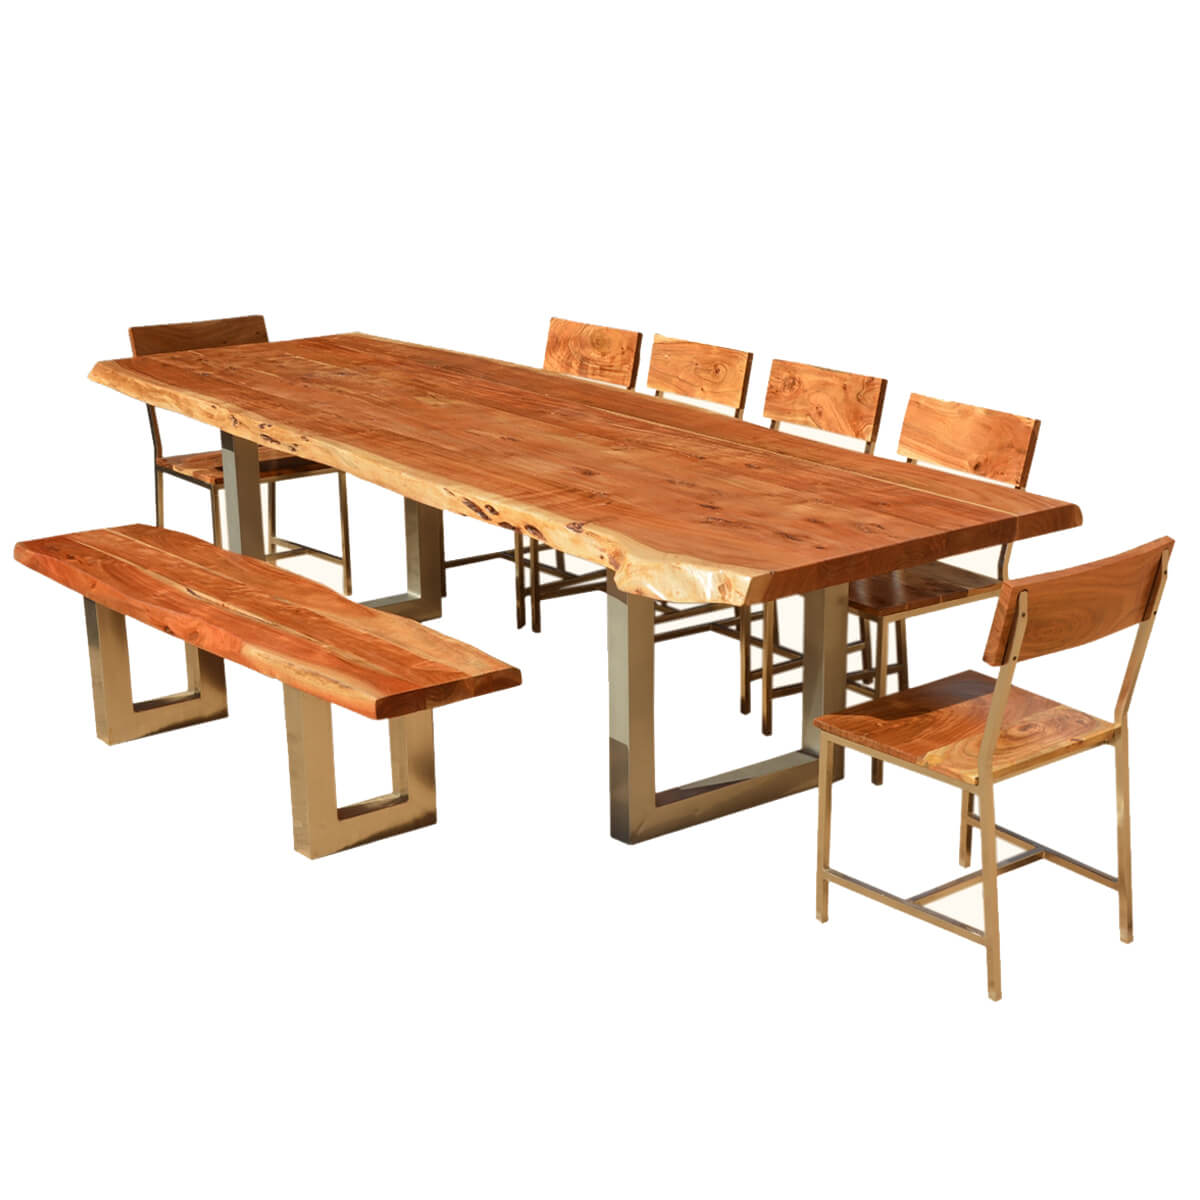 """Kitchen Tables With Benches And Chairs Table Wood: 117"""" Live Edge Dining Table W 6 Chairs & Bench"""